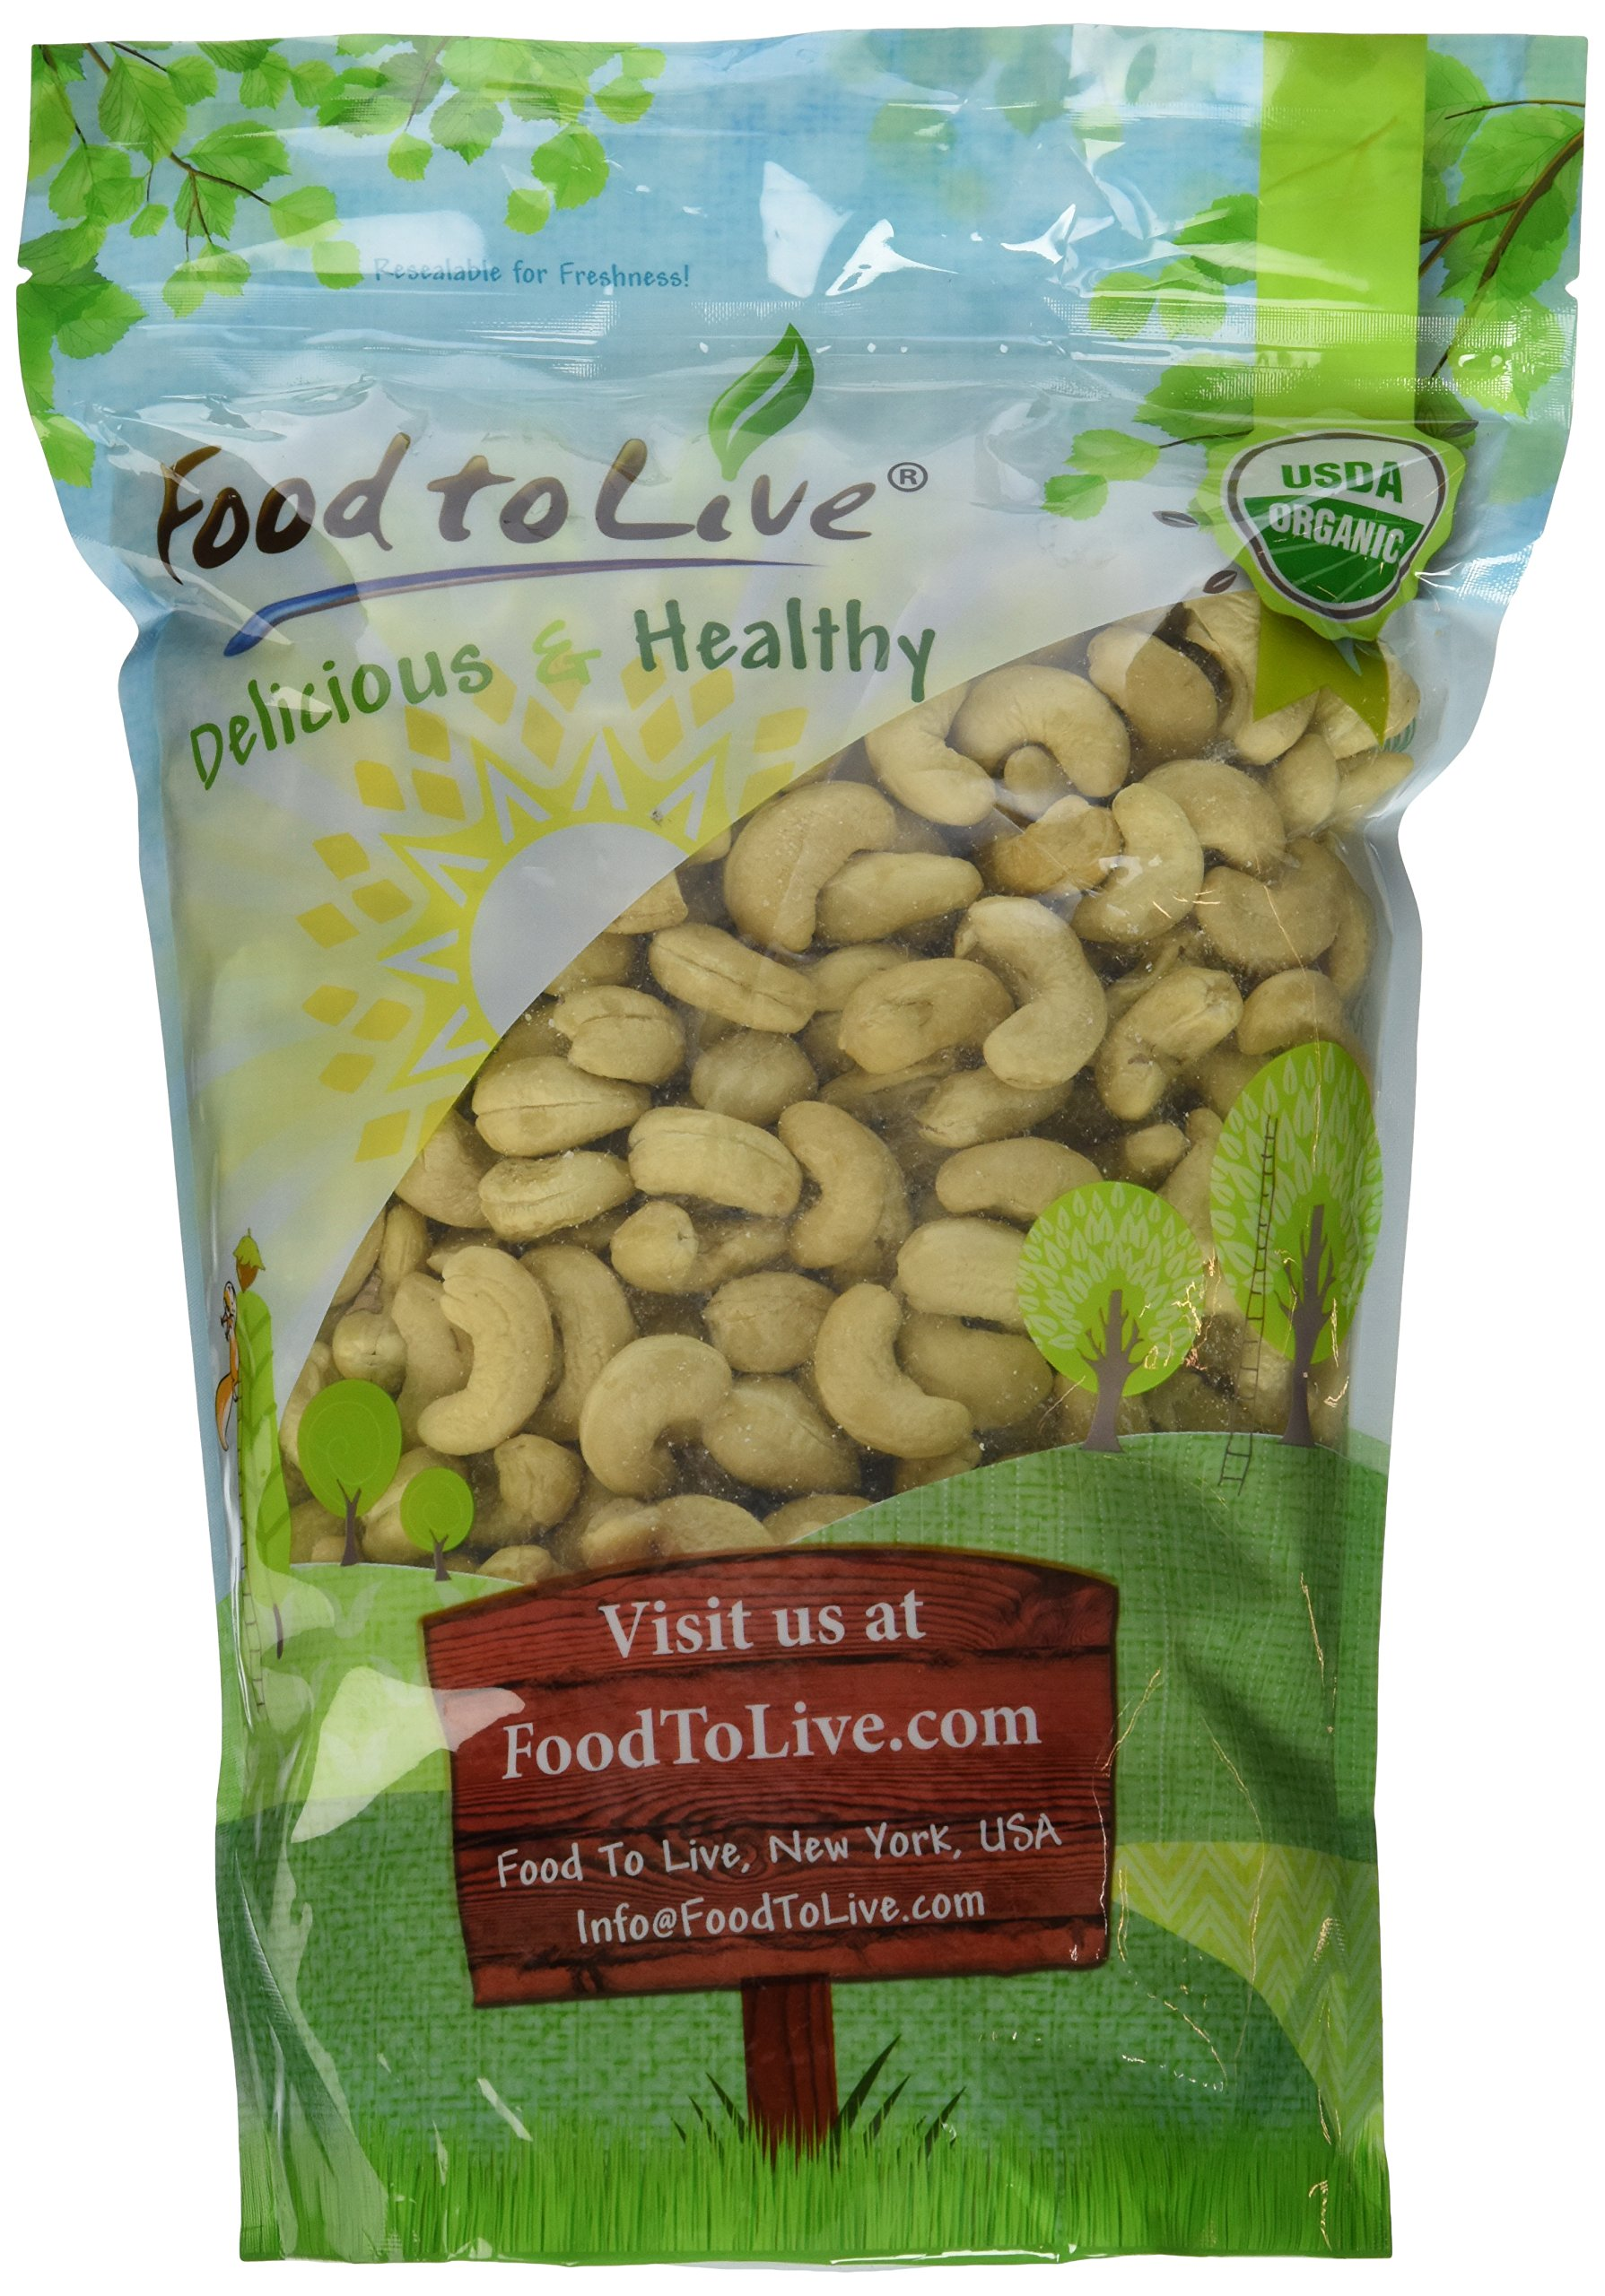 Food to Live Organic Cashews (Whole, Raw) (2 Pounds)